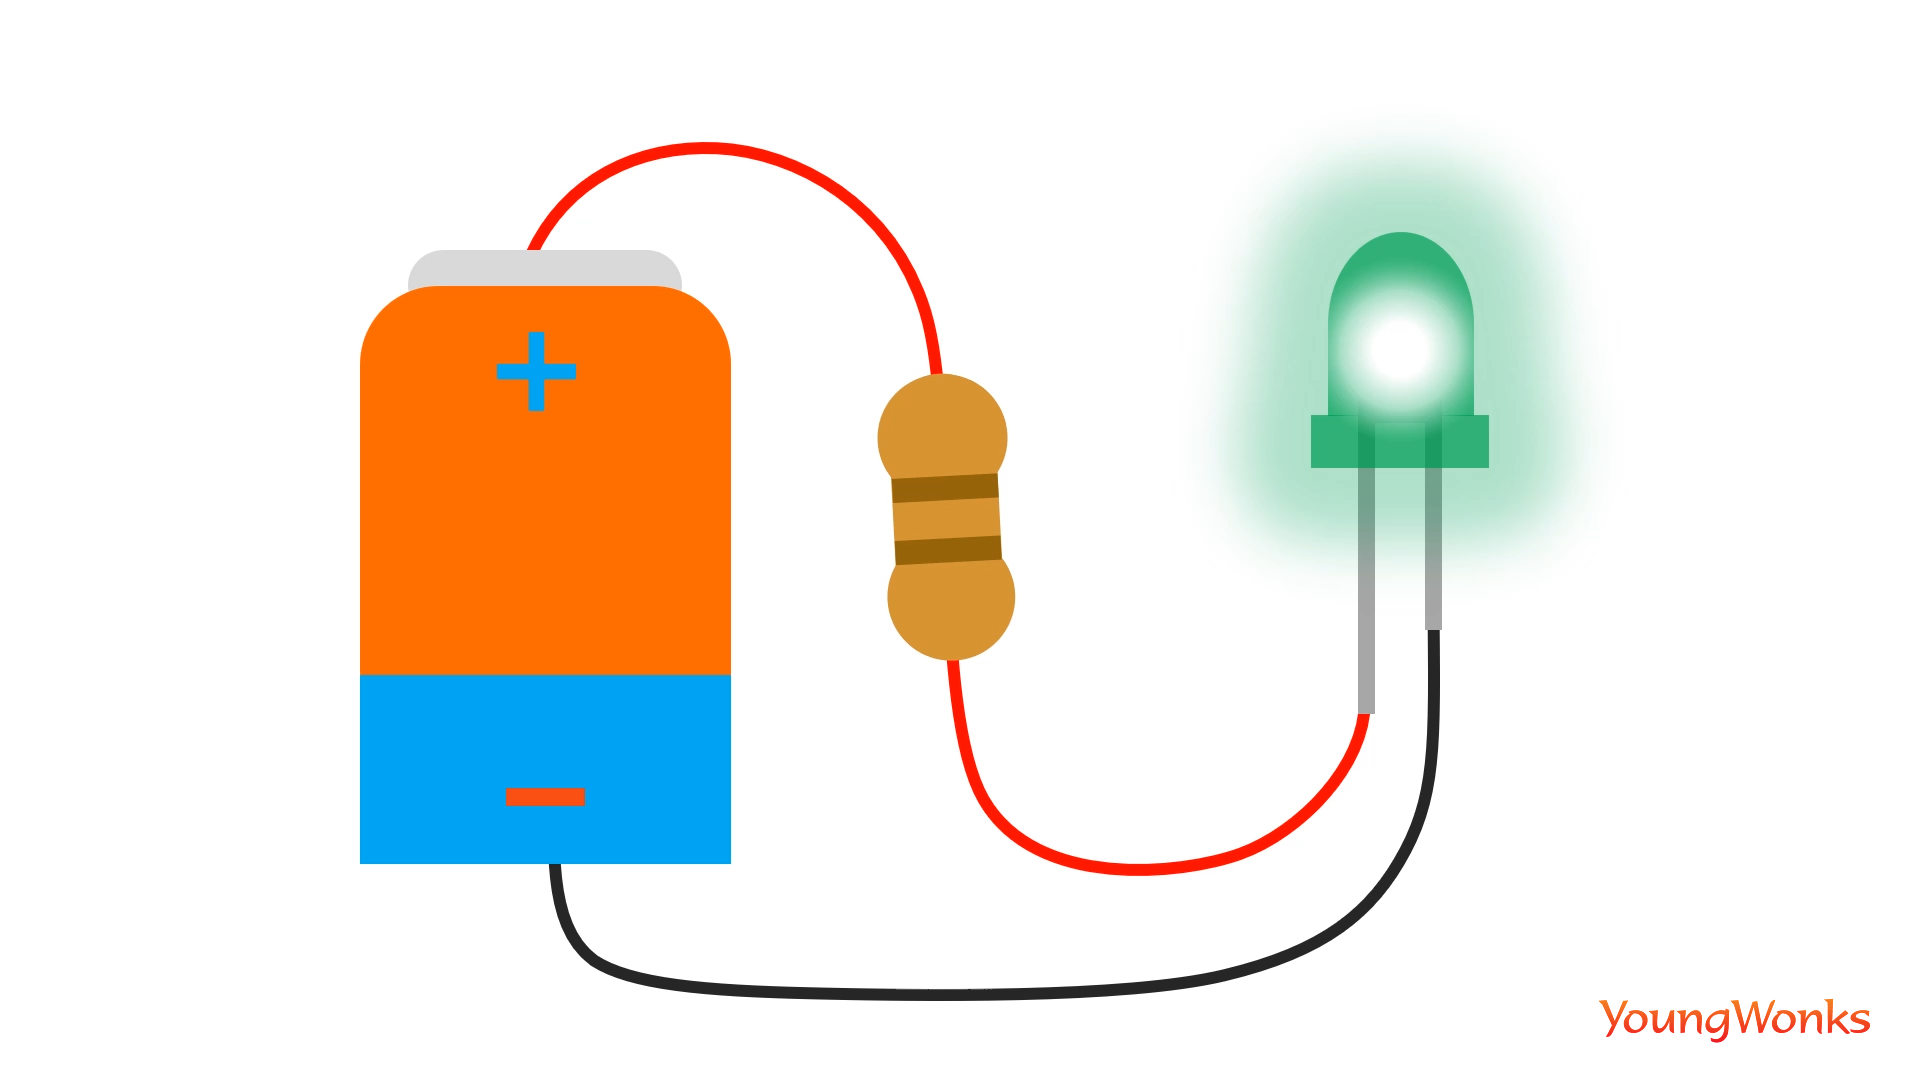 Simply Explained The Flow Of Electricity Led Circuits And Resistors A Resistor Will Act As Valve Sorts Control Amount Flowing Through Circuit So That Get Enough Current To Light